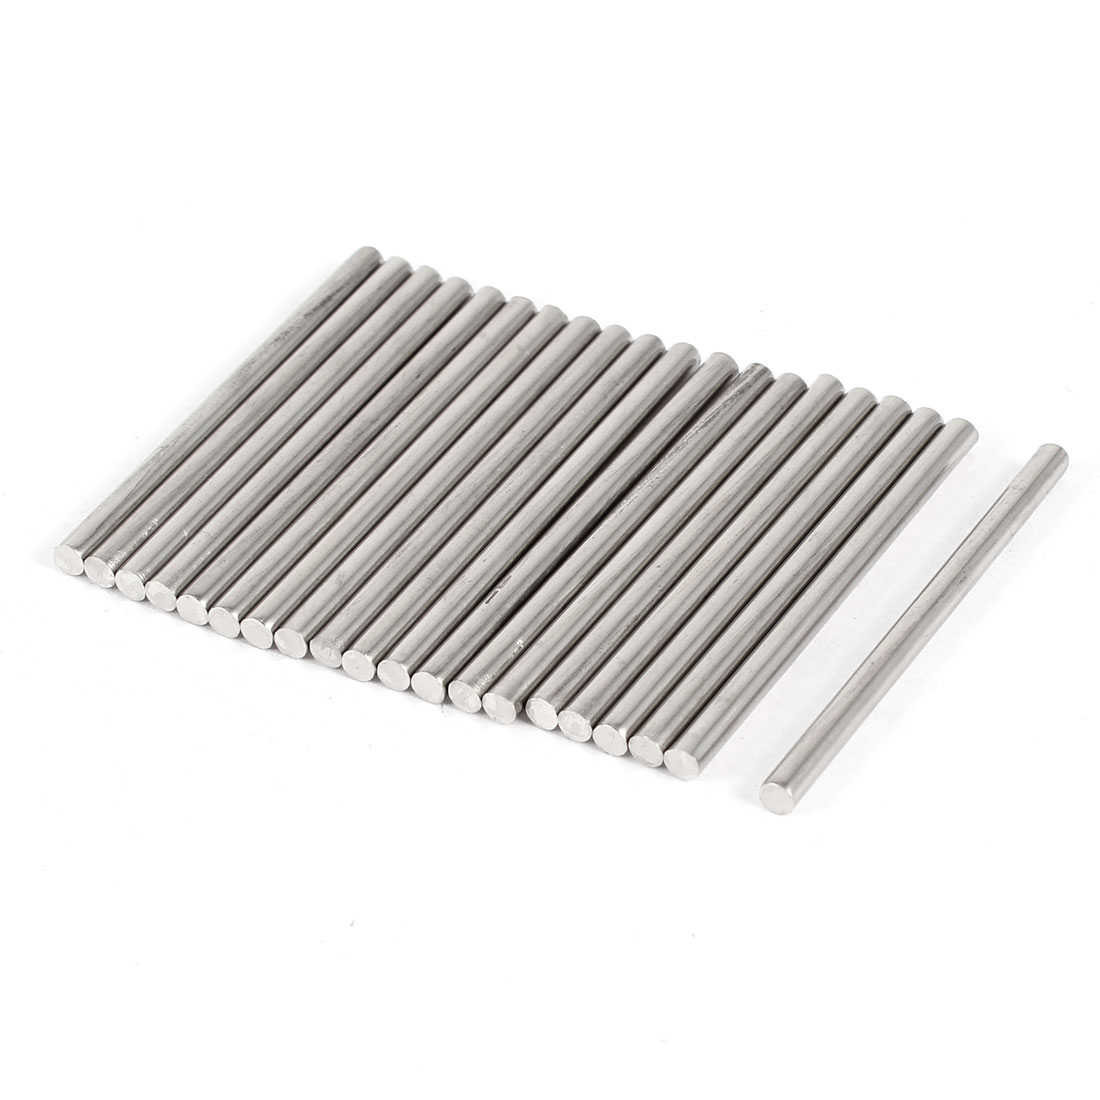 DIY Car Helicopter Model Toy Stainless Steel Round Axles Rod Bar 2.5mmx40mm 20 Pcs